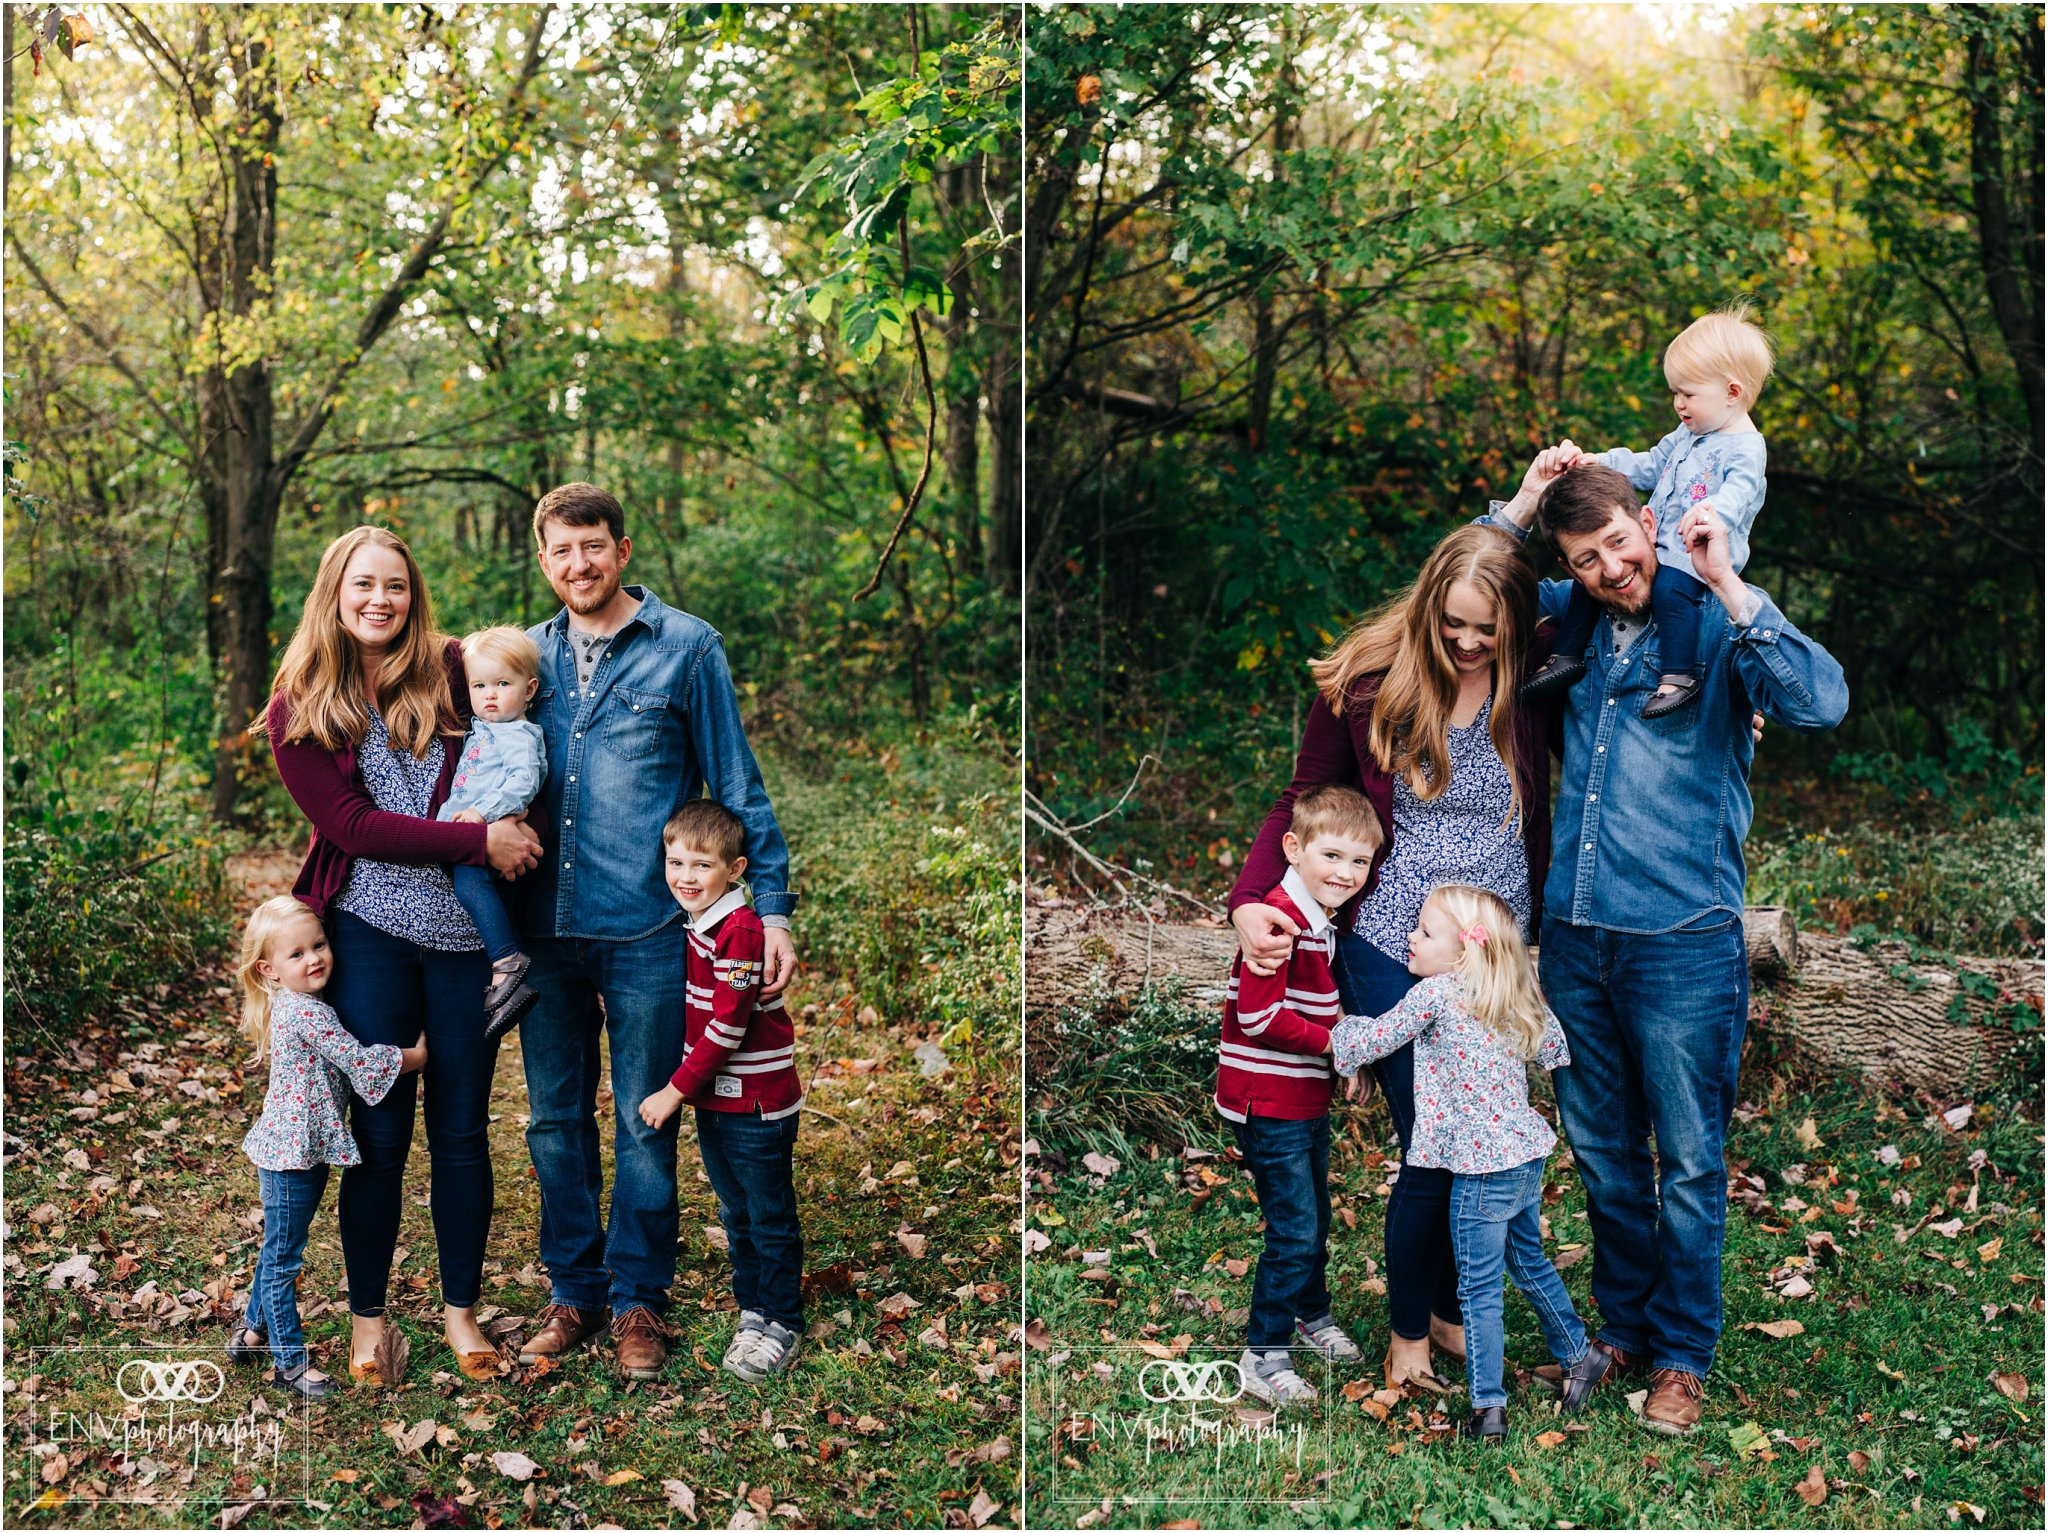 Mount Vernon Ohio Sunbury Ohio Family Photographer (12).jpg